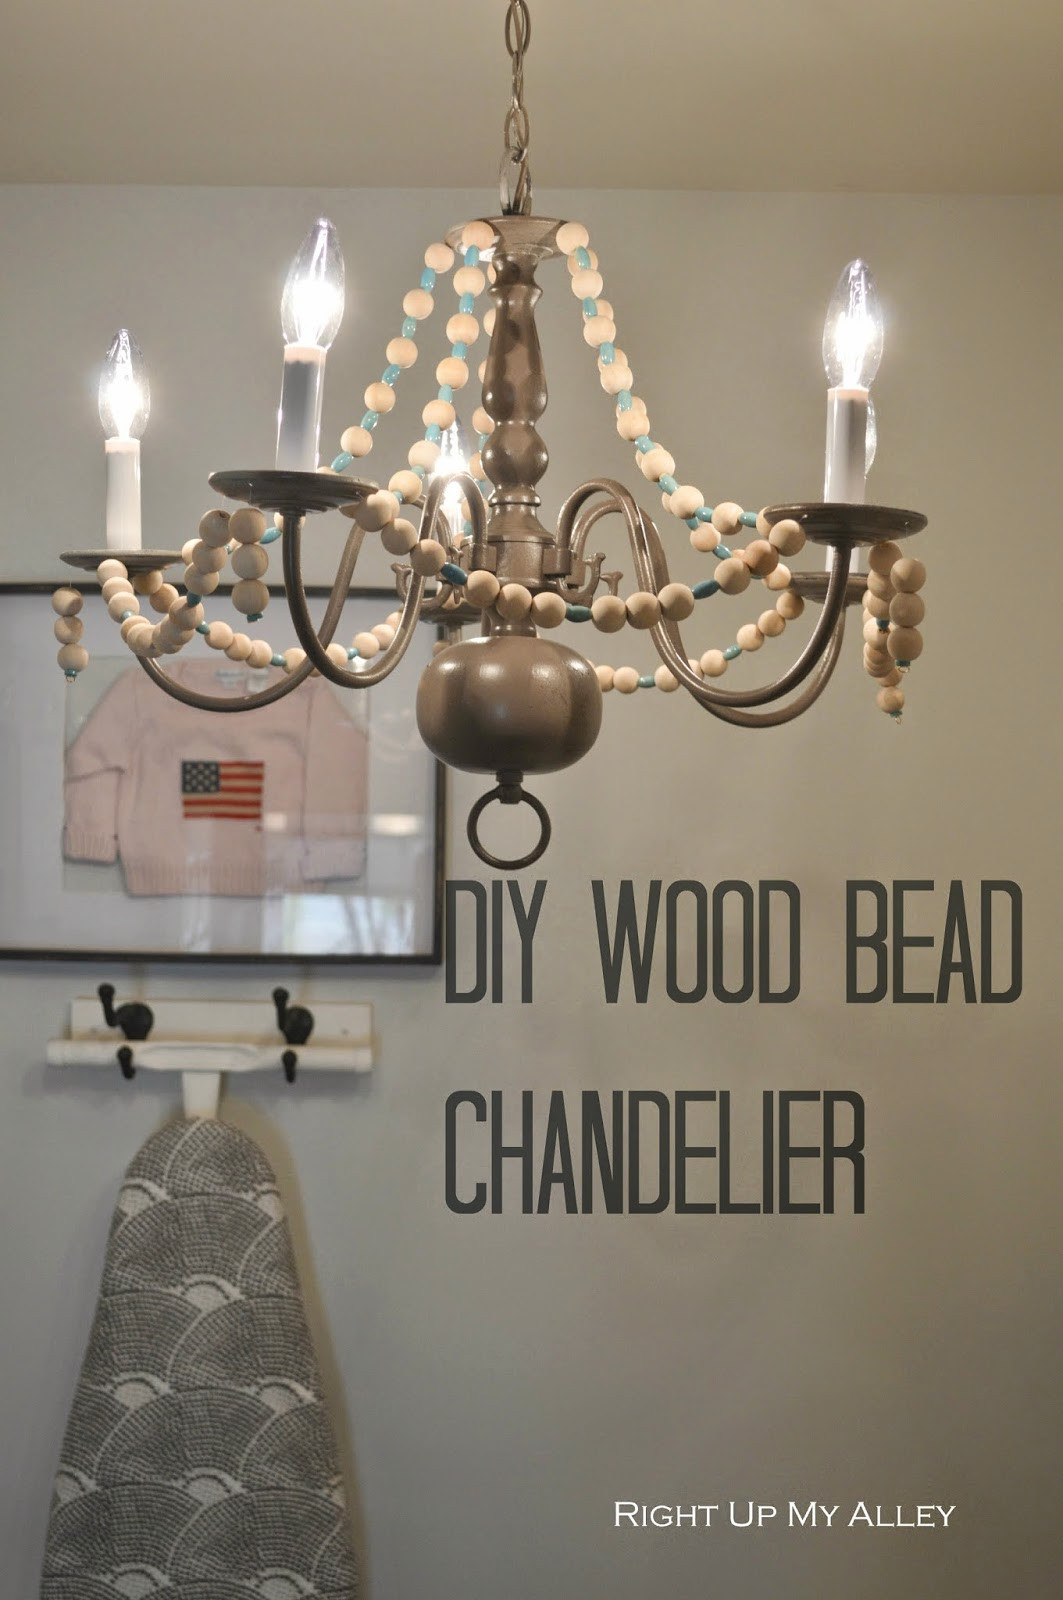 Best ideas about Wood Bead Chandelier DIY . Save or Pin Right up my alley DIY Wood Bead Chandelier Now.